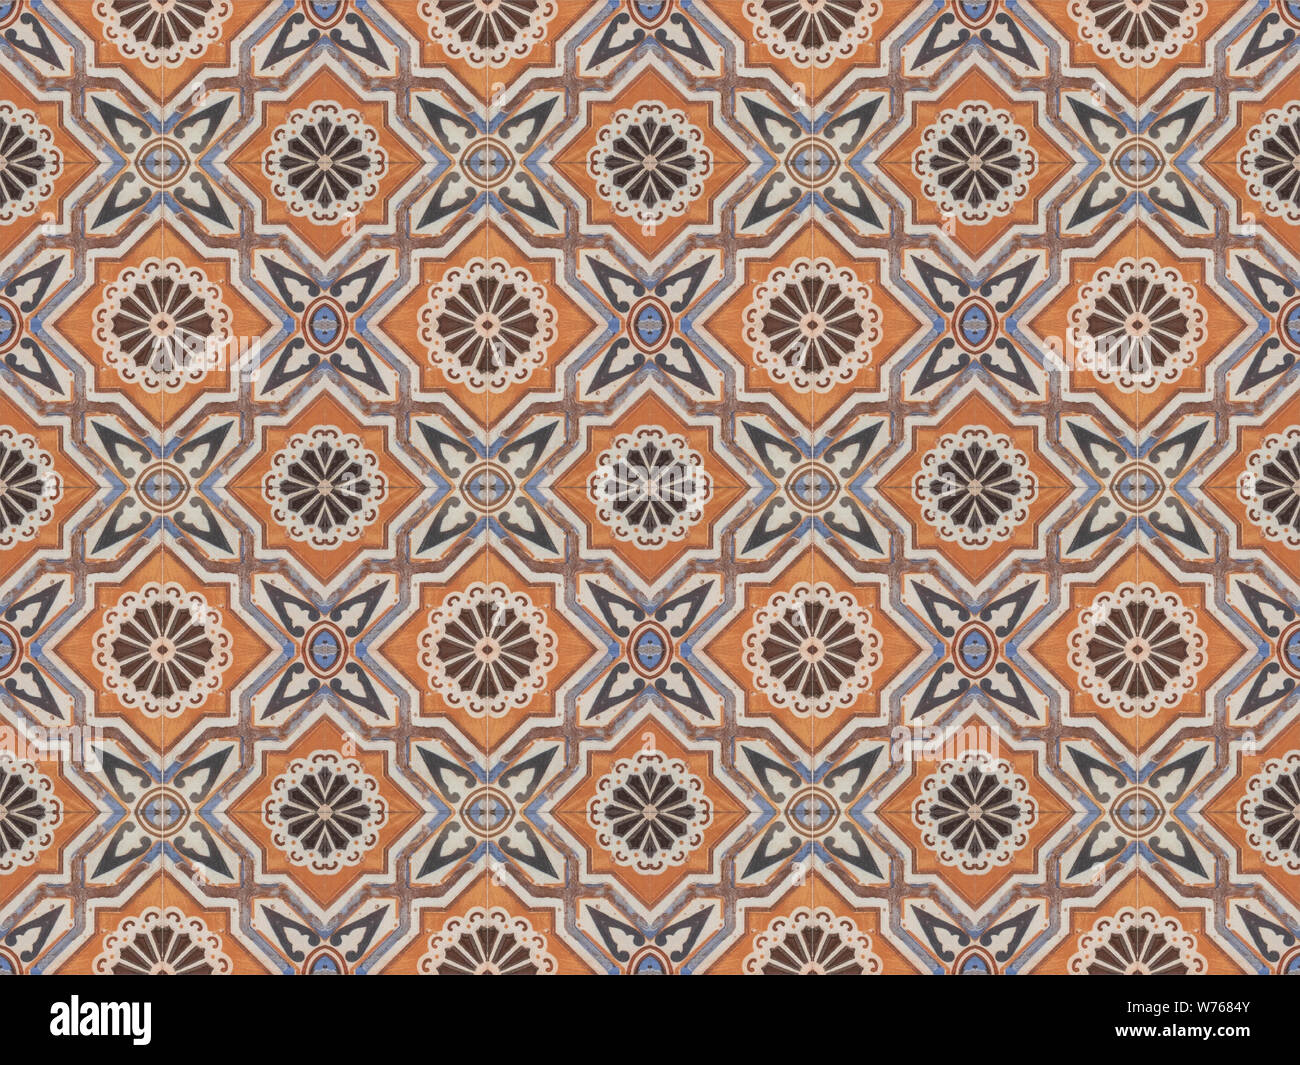 Turkish traditional ornamental decorative tiles. Seamless pattern abstract background concept. Stock Photo